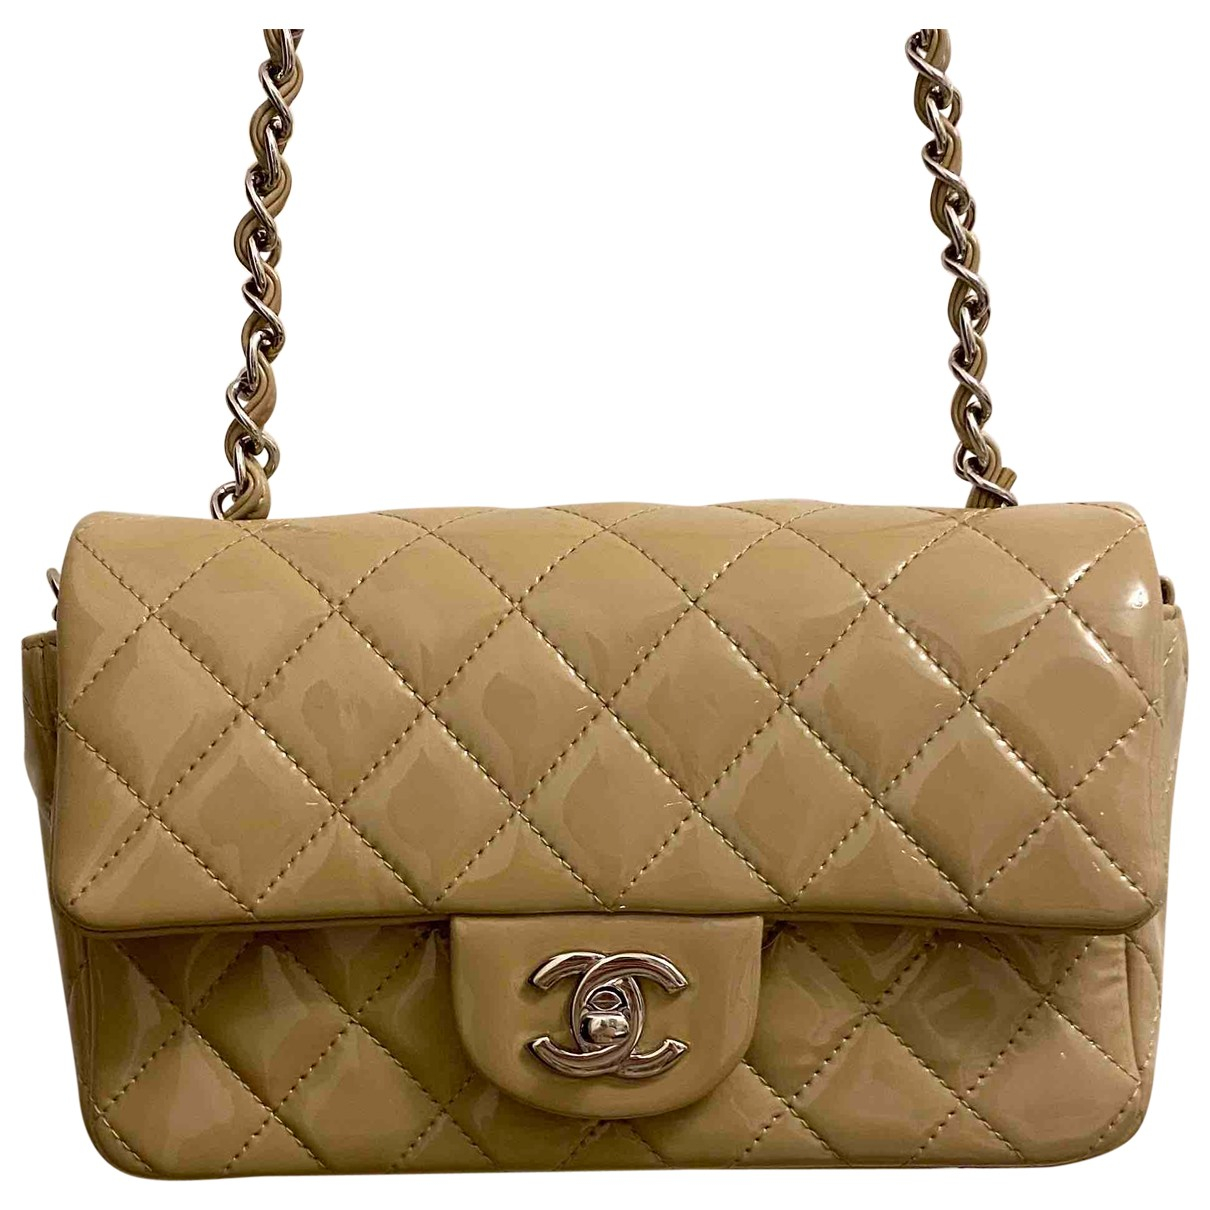 Chanel Timeless/Classique Beige Patent leather handbag for Women \N